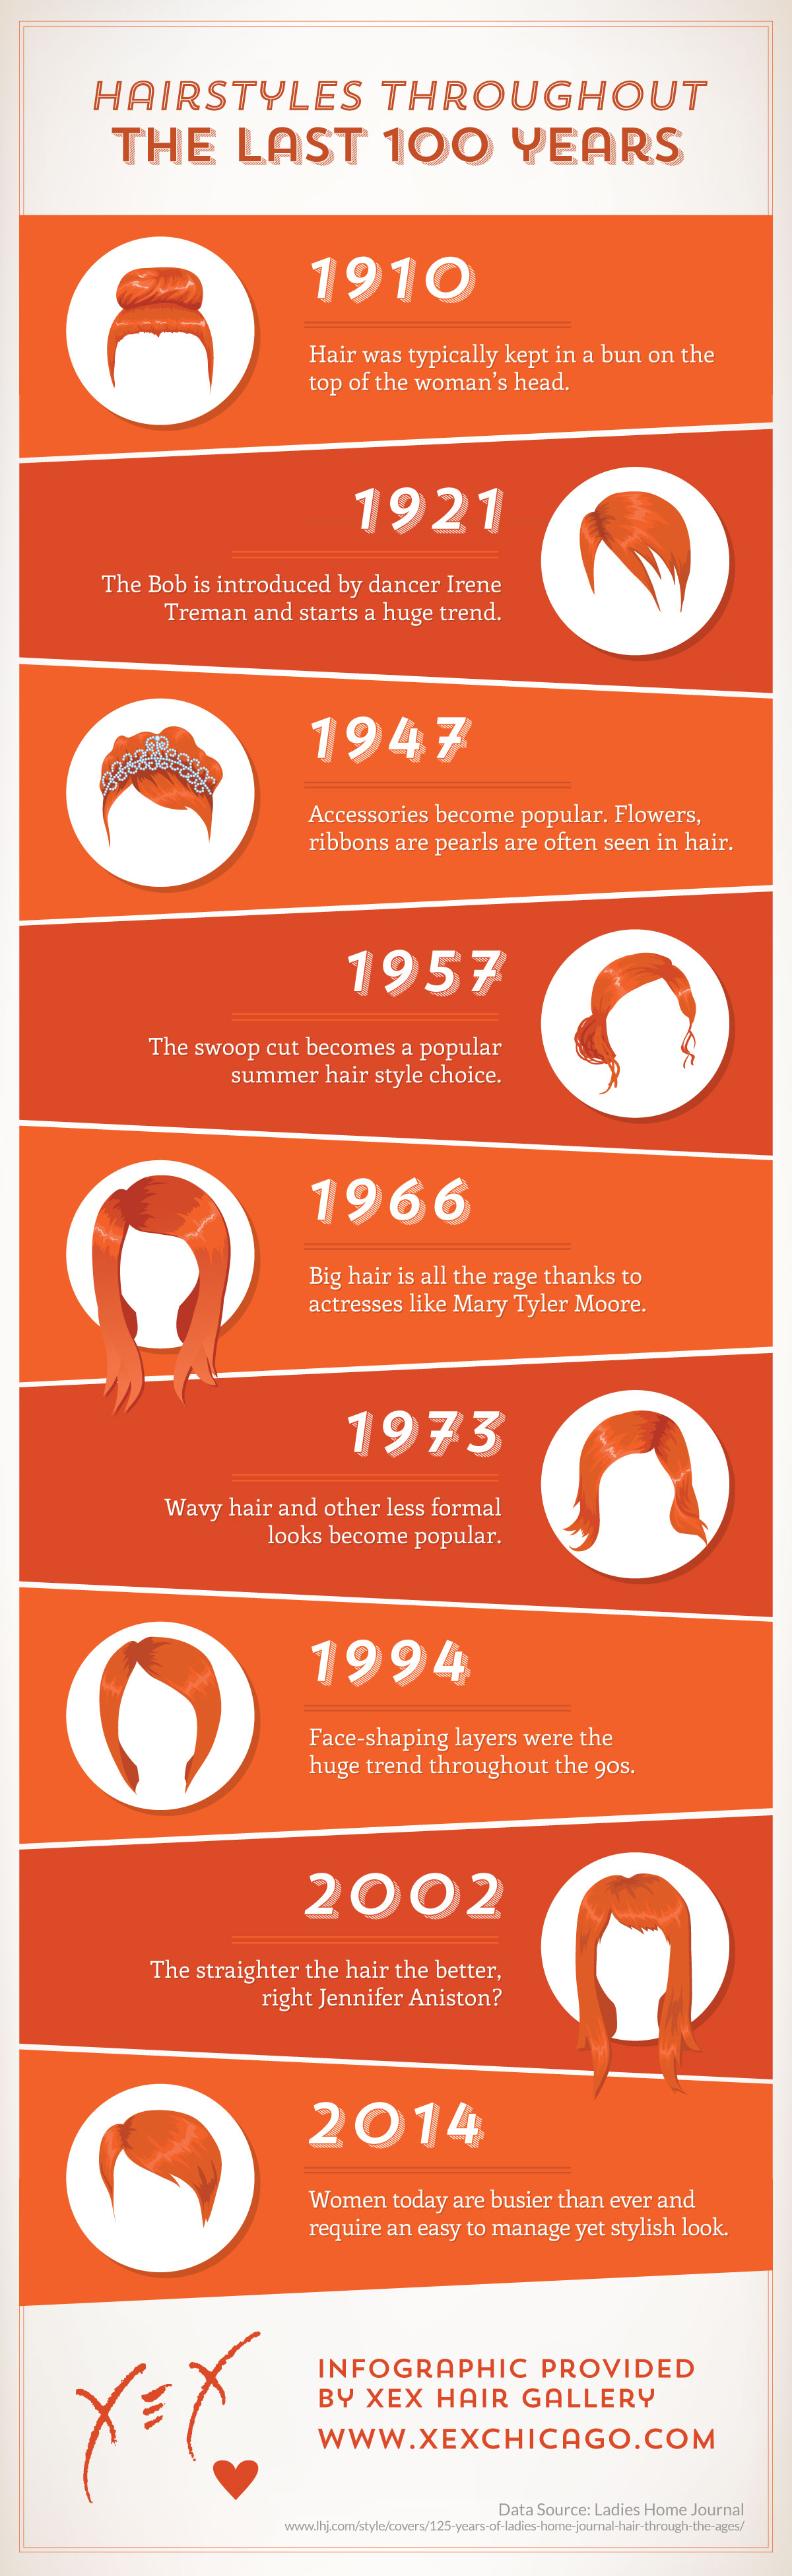 hairstyles through the ages - an infographic xex hair gallery